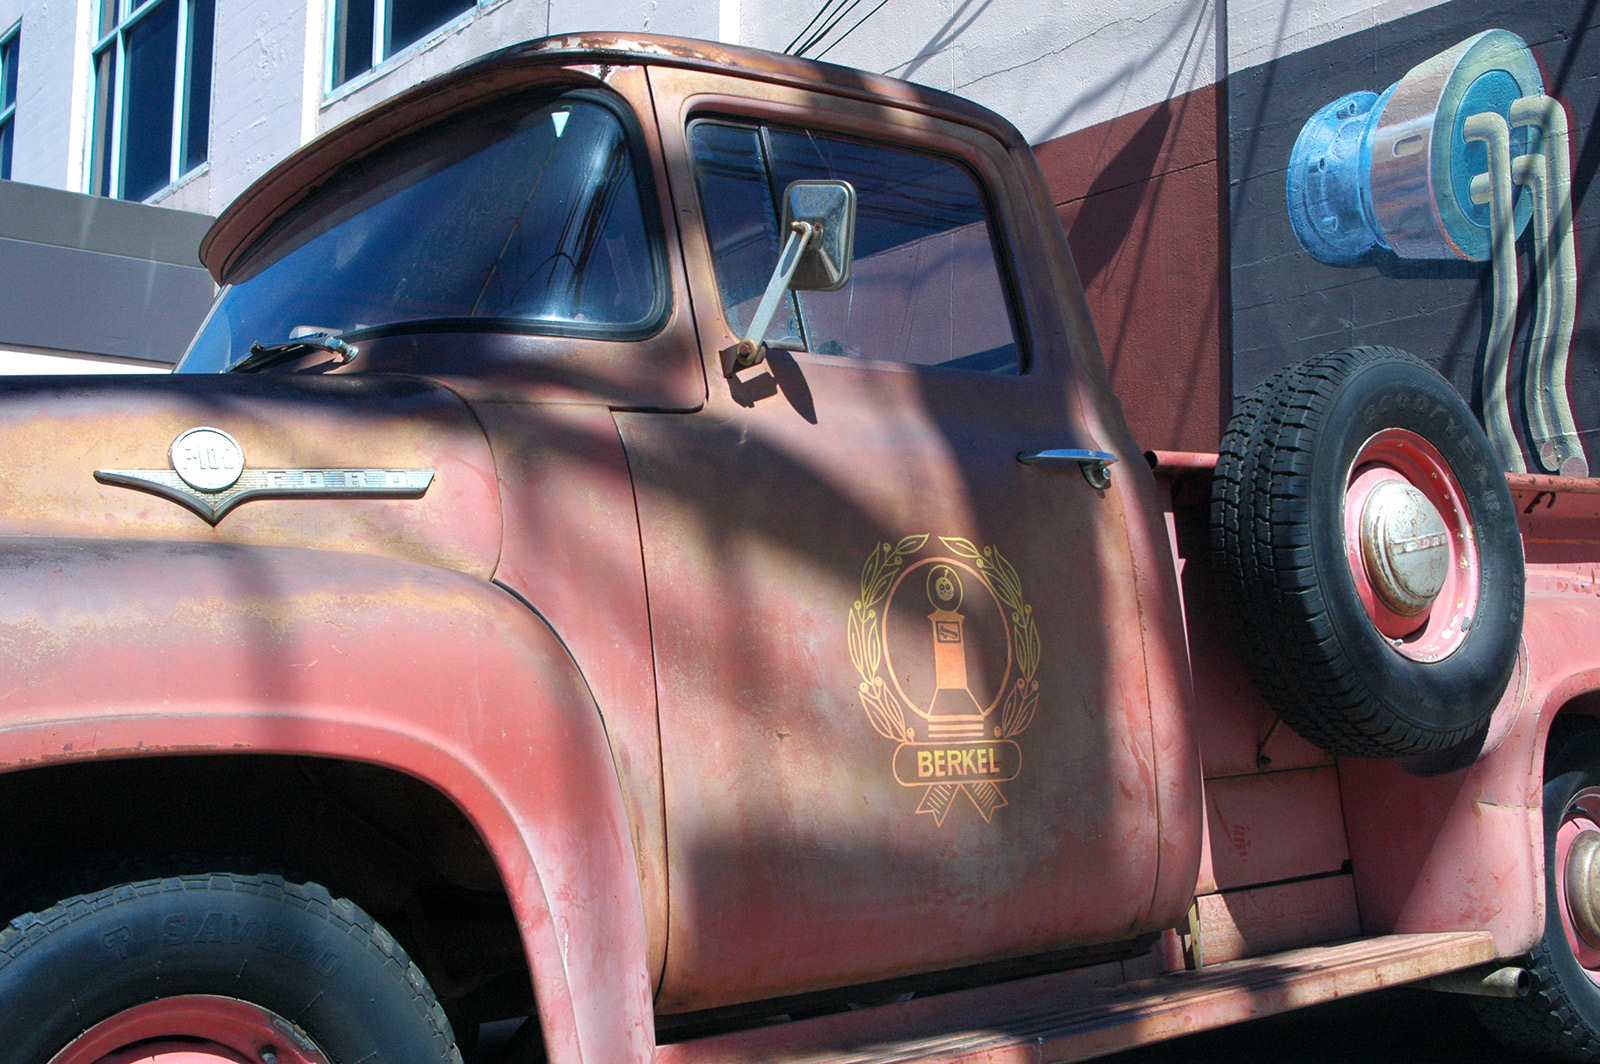 Image shows an old, classic pickup truck